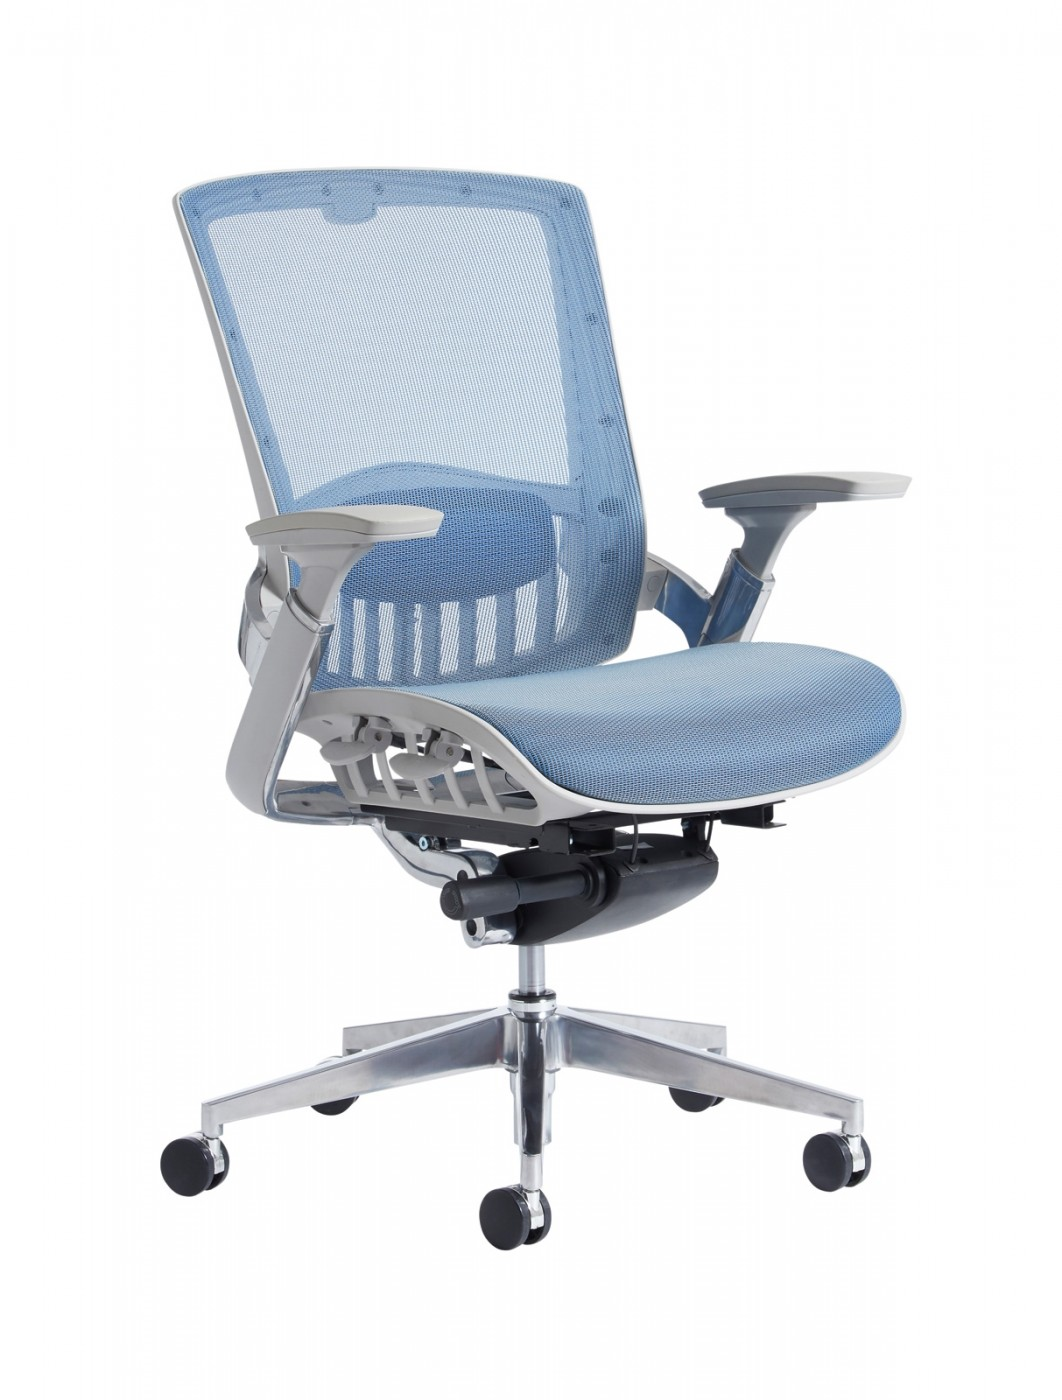 High office chair - Dams Arcadia High Mesh Back Task Chair Aca300k2 B Enlarged View